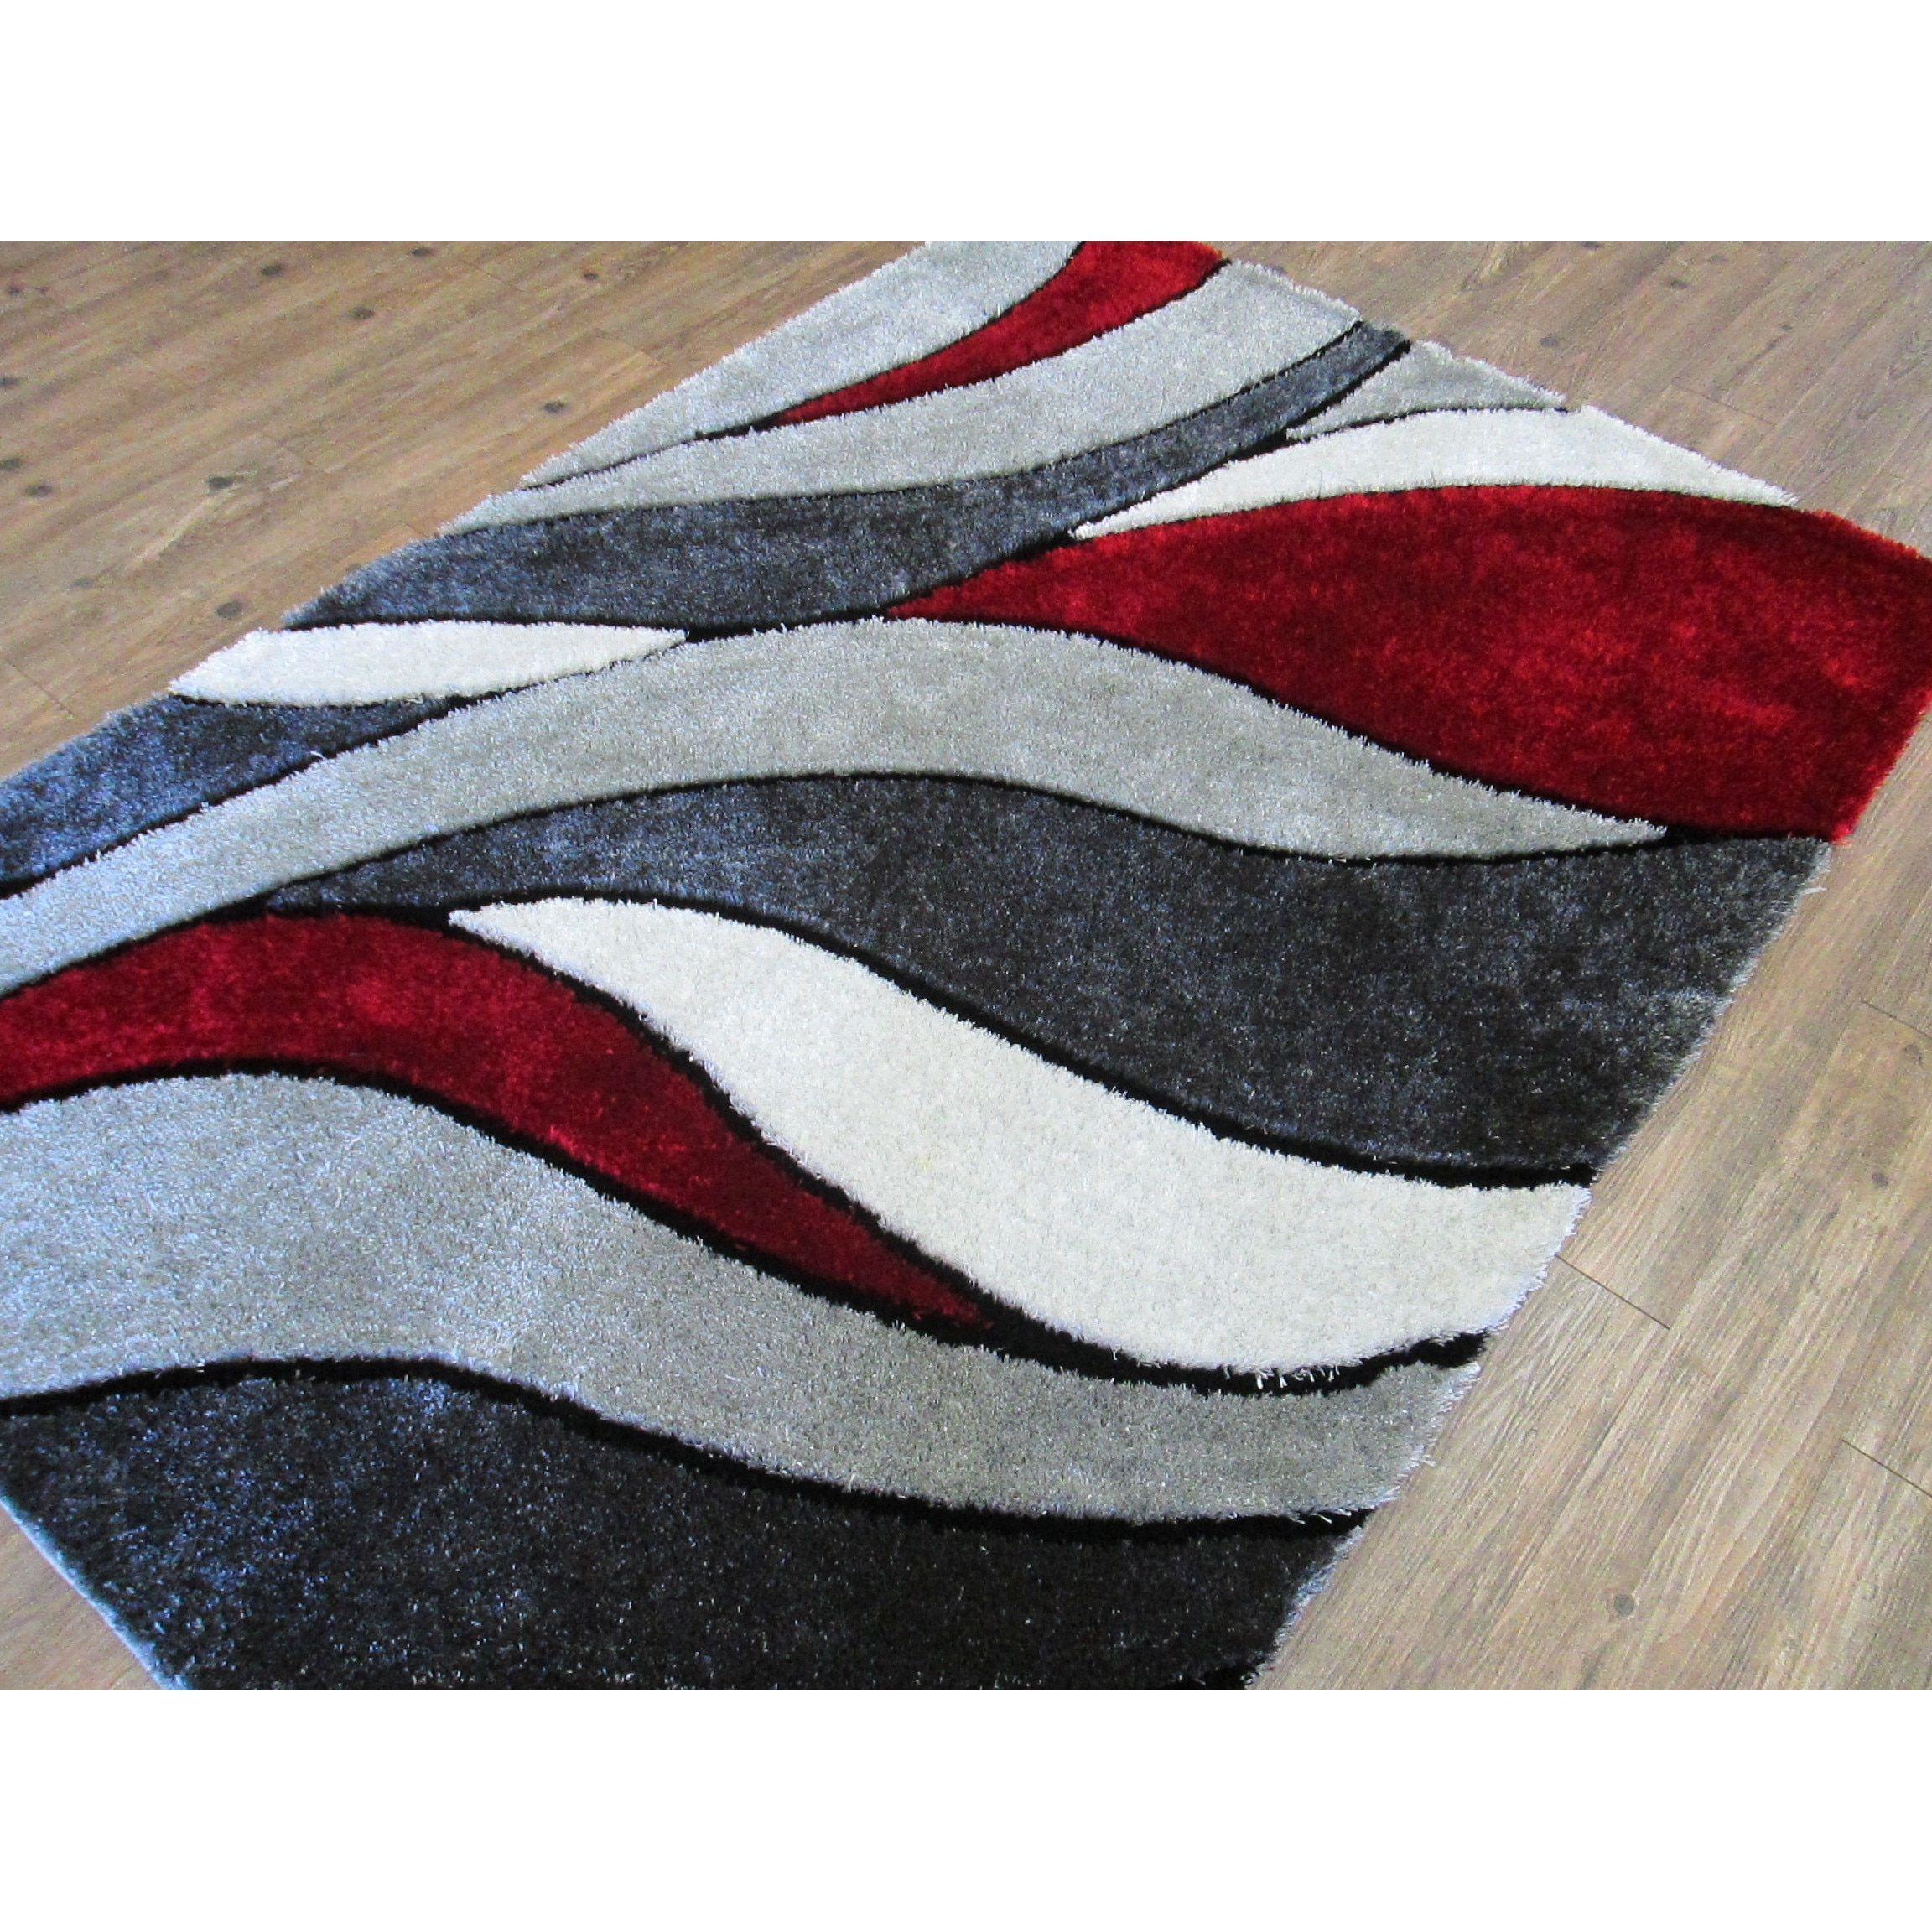 Abstract Red Gray Modern Hand Tufted Shag Area Rug 5 X 7 Grey